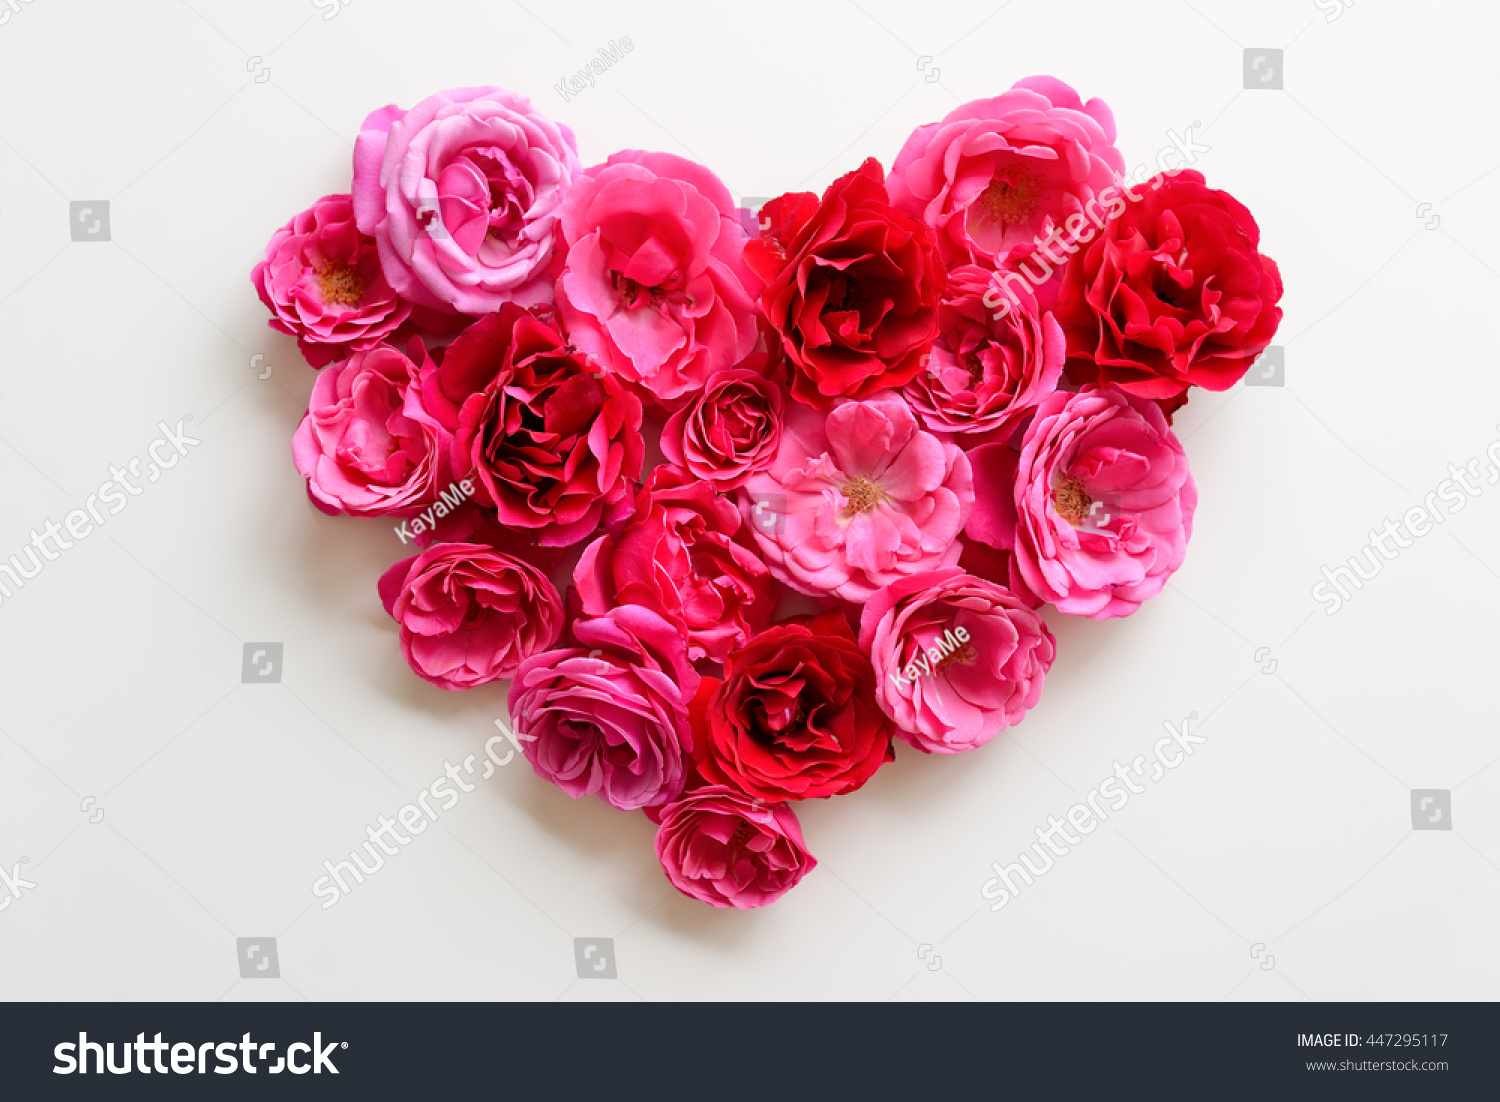 Heart symbol made pink roses on stock photo image royalty free heart symbol made of pink roses on white background flat lay beautiful flowers roses izmirmasajfo